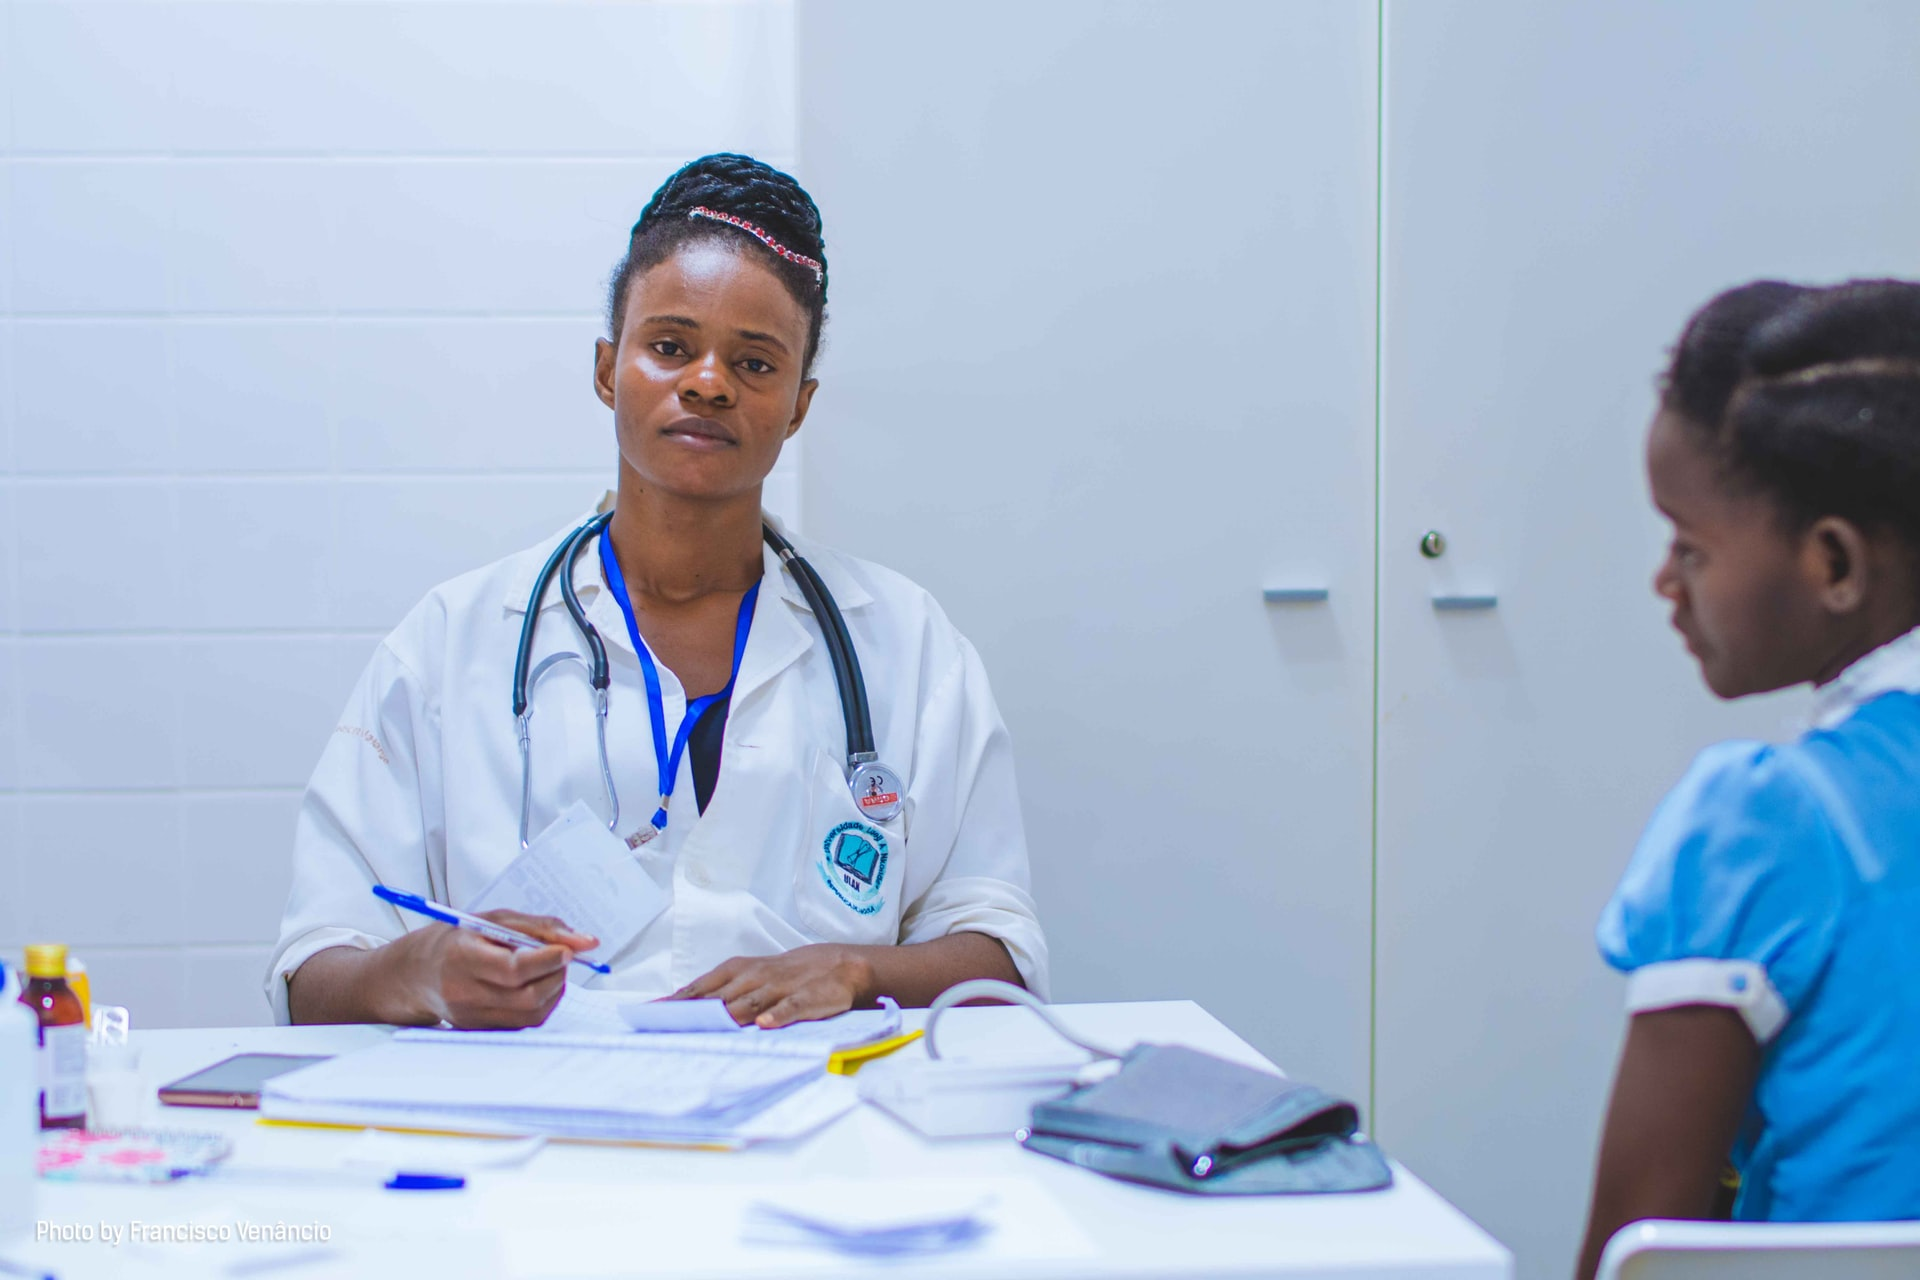 black-woman-healthcare-industry-hopsital